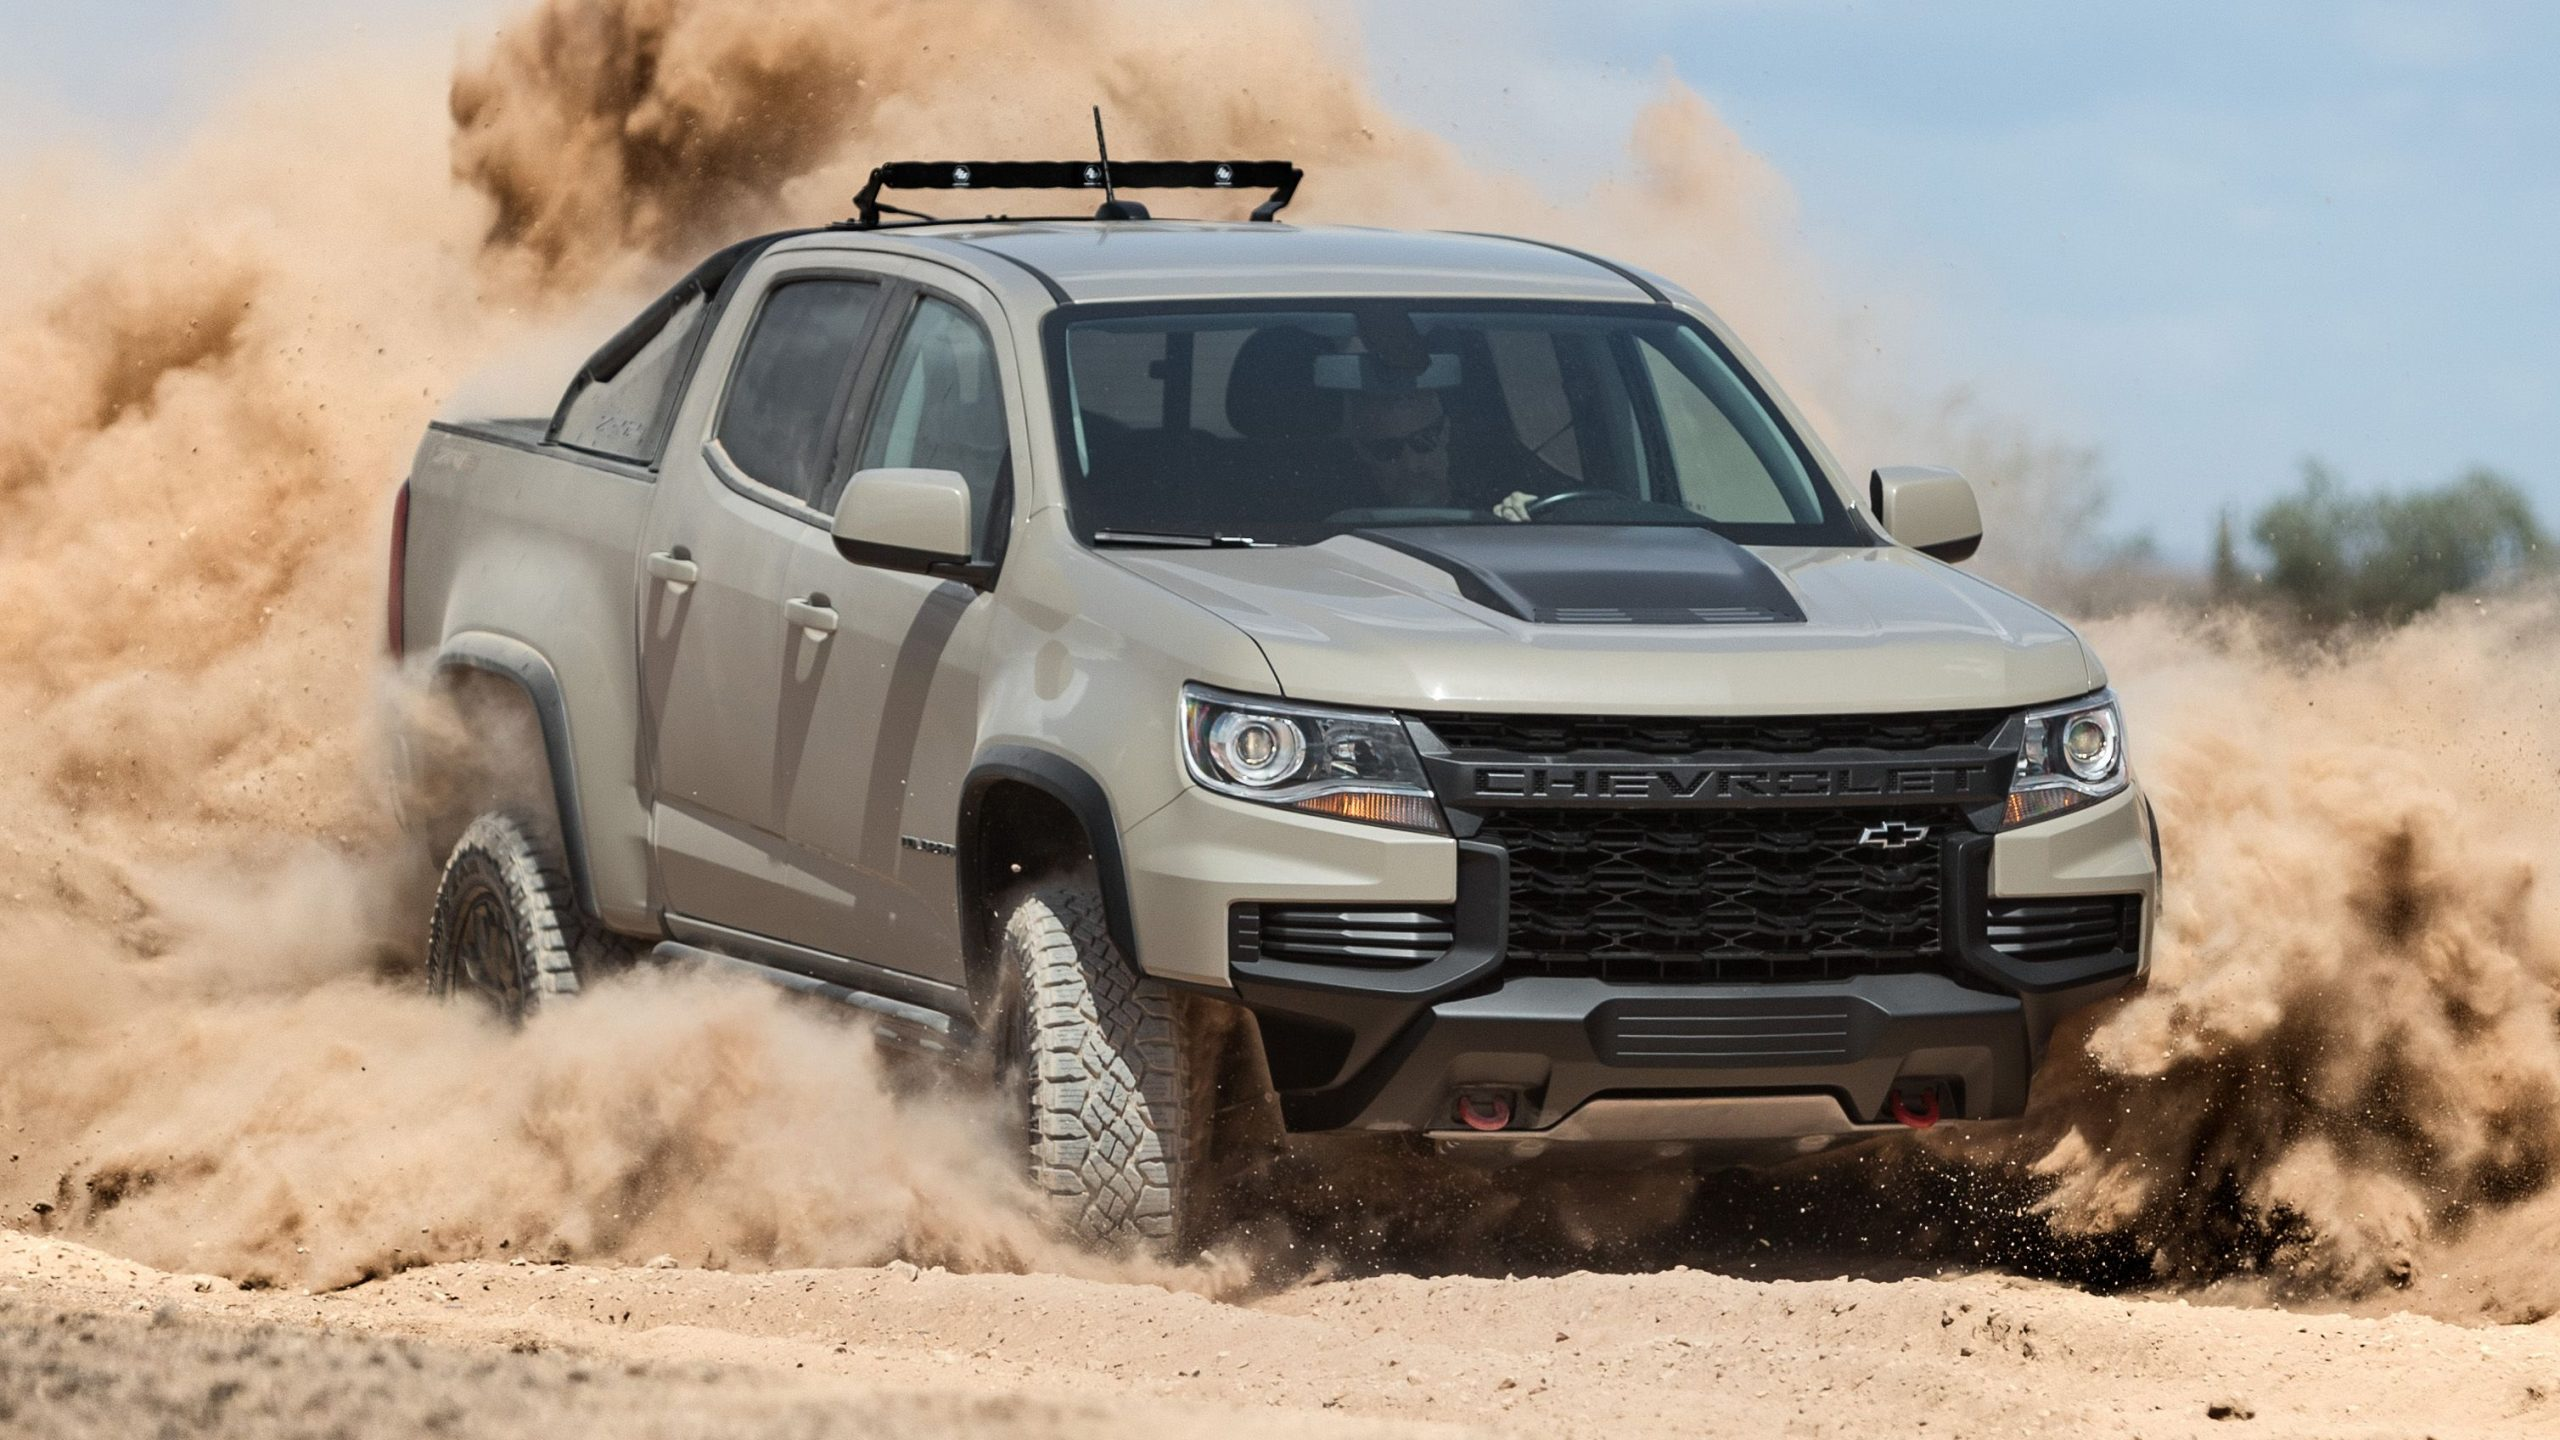 2021 Chevrolet Colorado Zr2 Unveiled With Updated Design Running Boards For 2021 Chevy Colorado Crew Cab